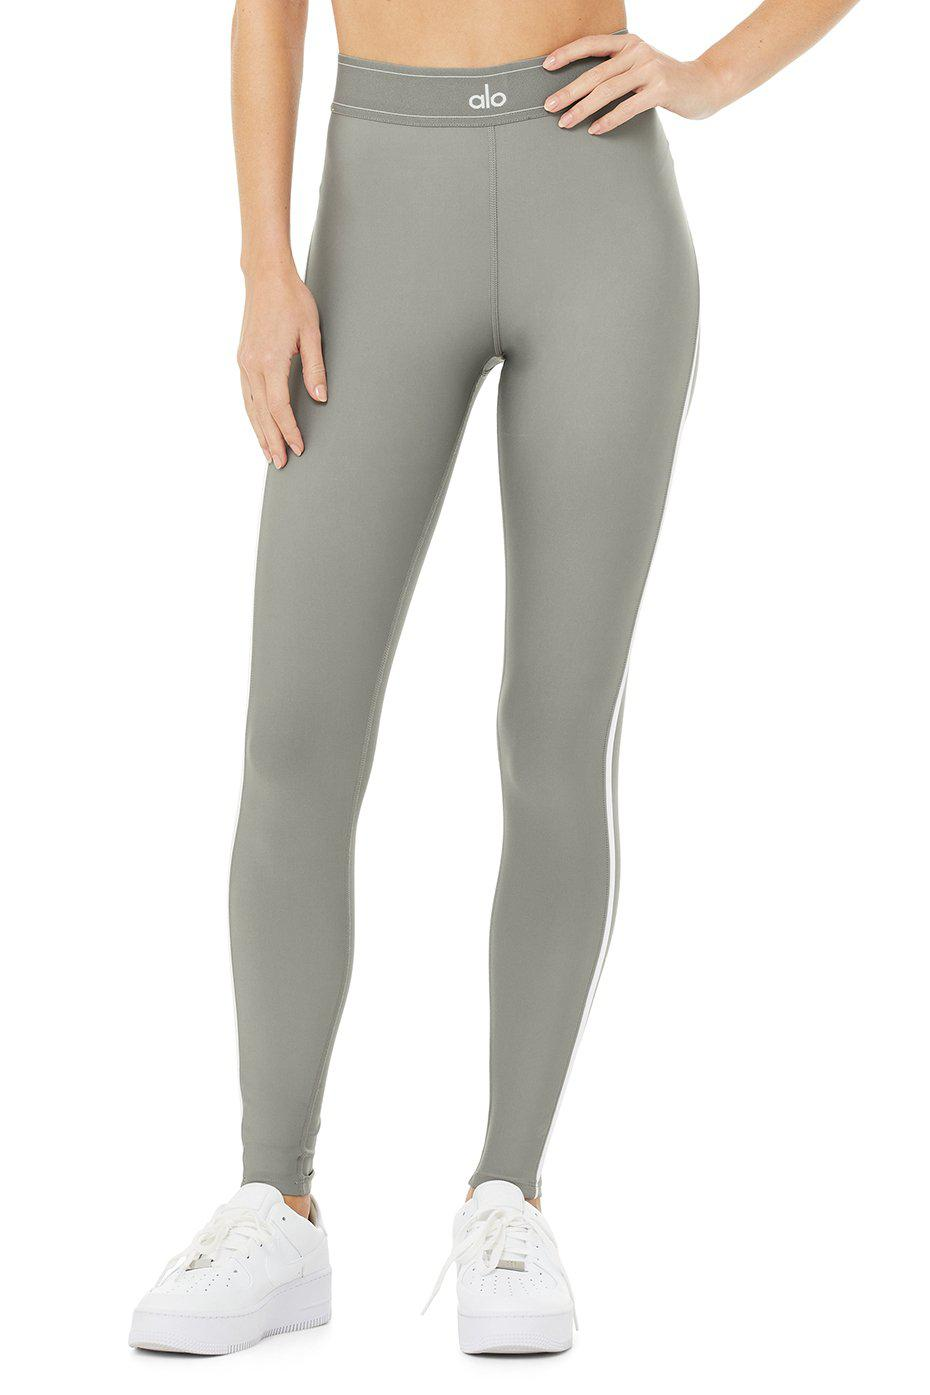 Airlift High-Waist Suit Up Legging - Sterling